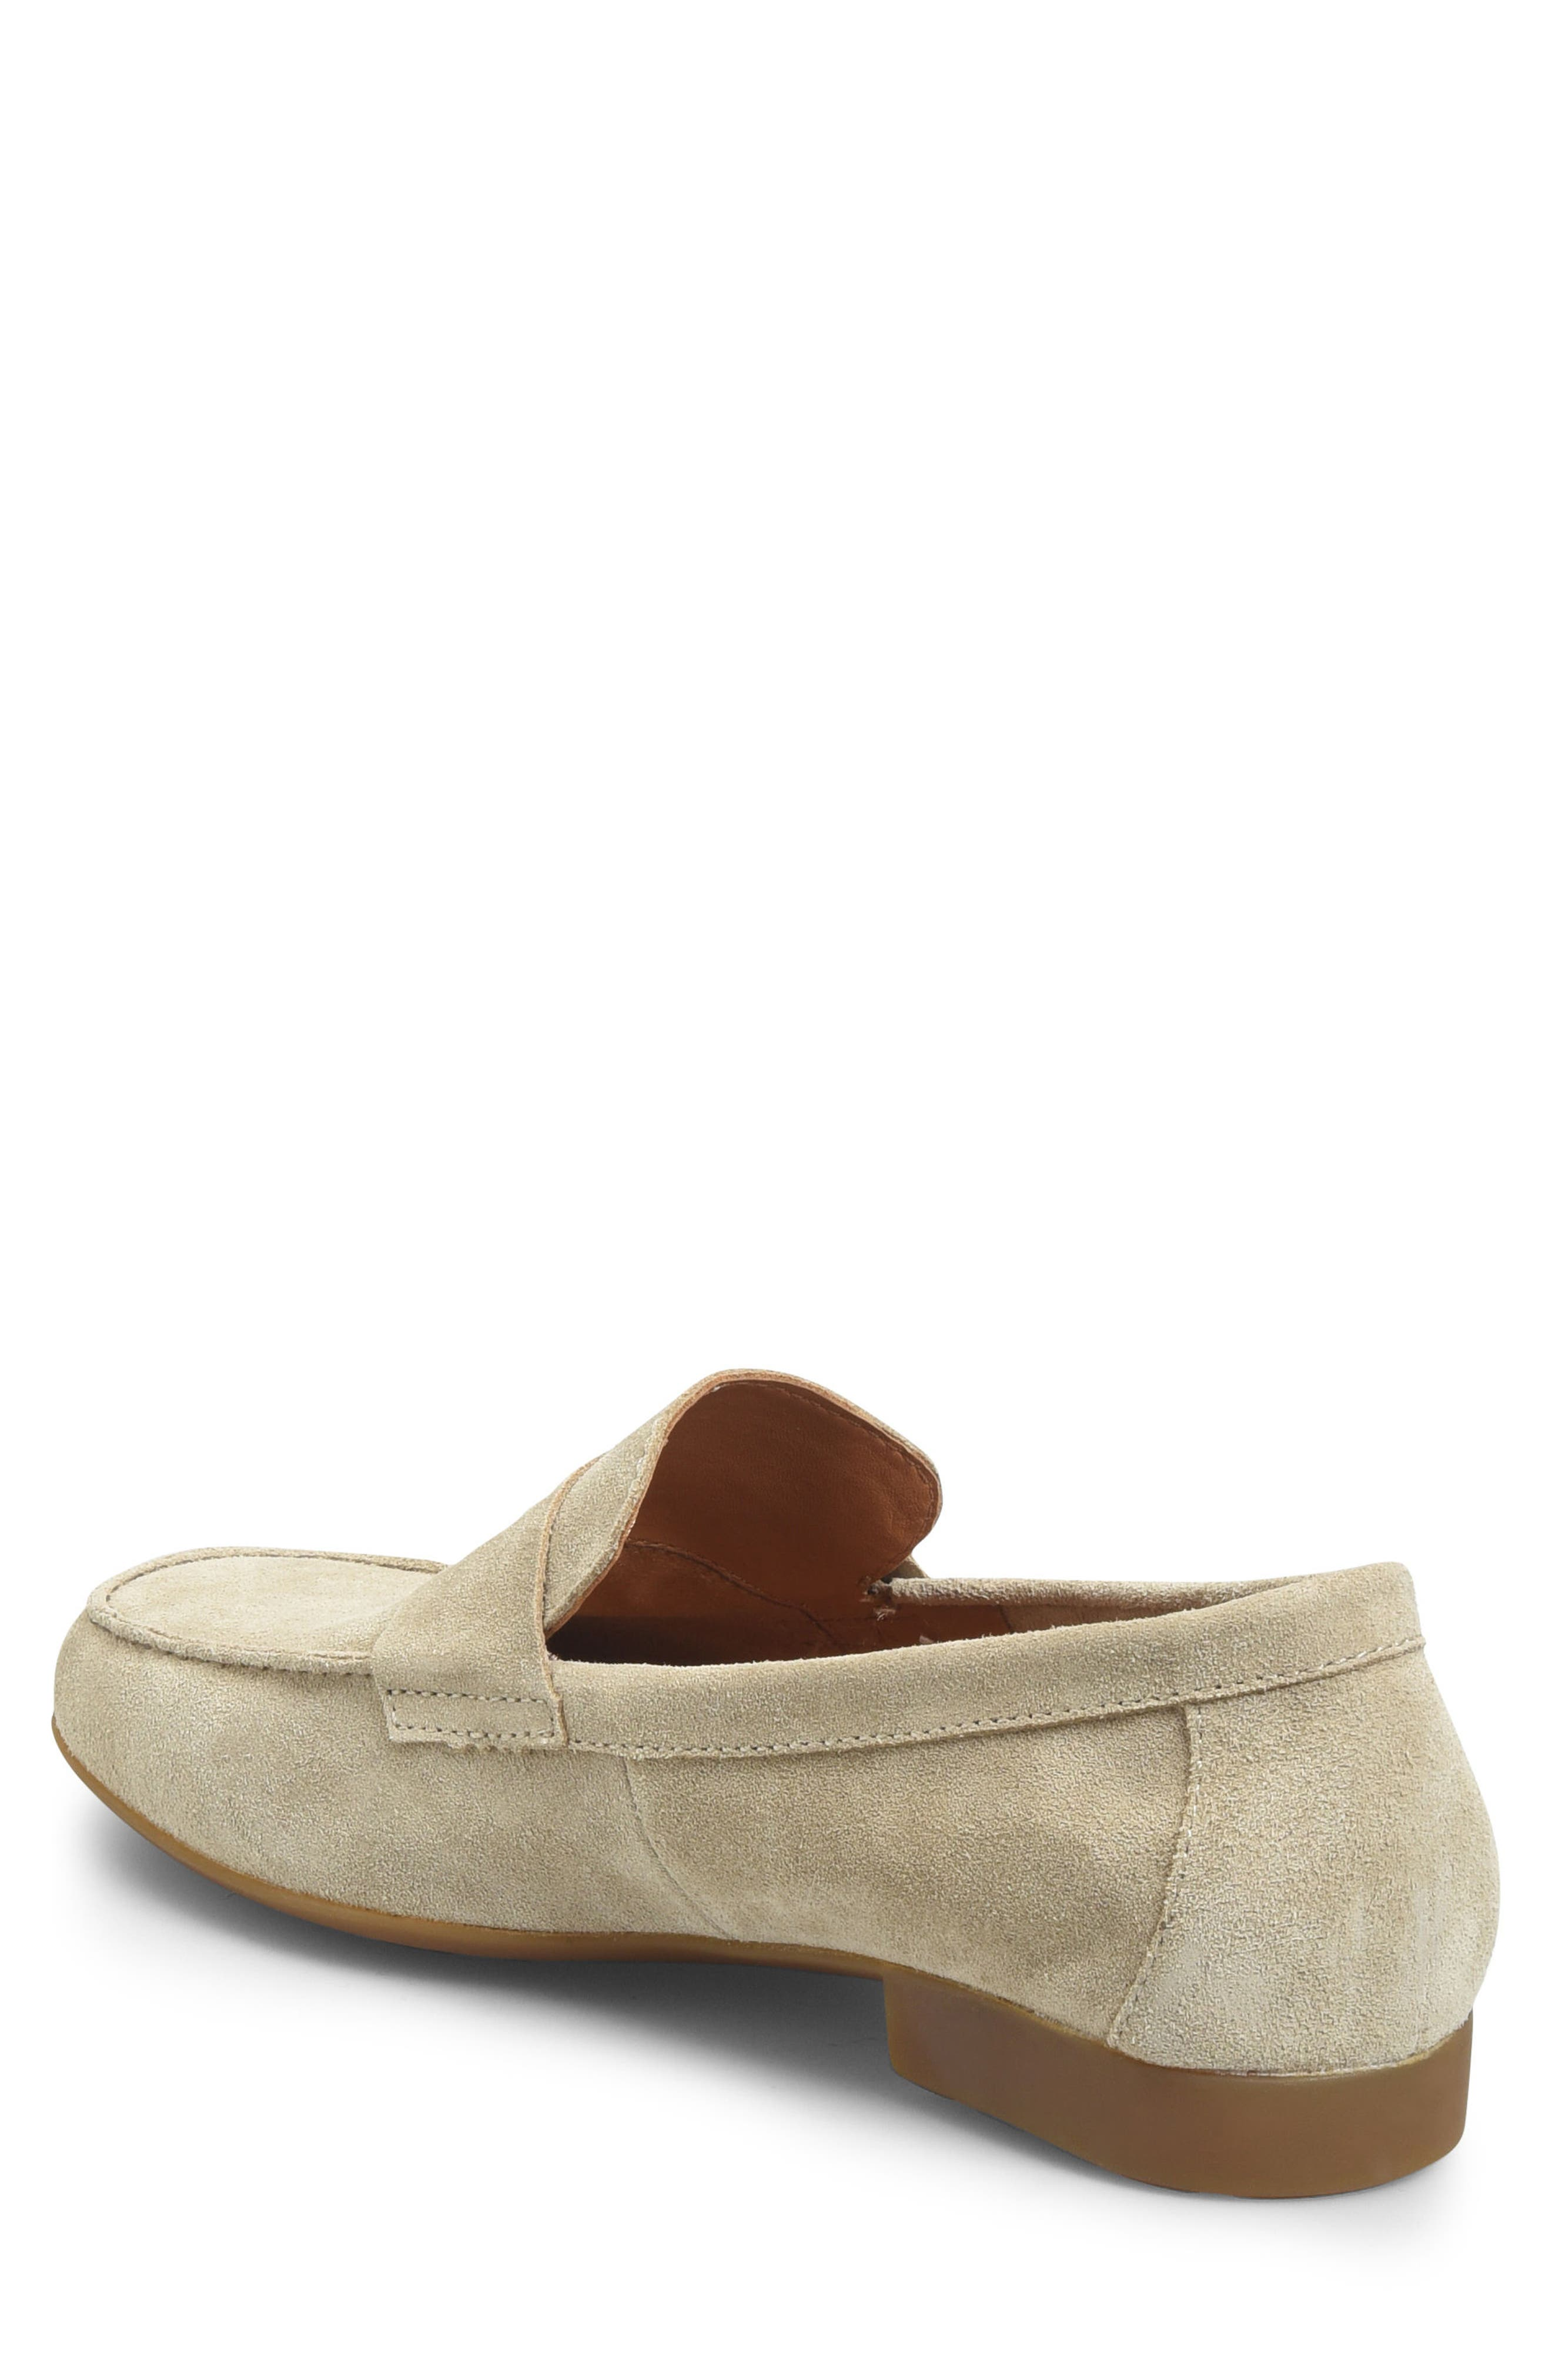 'Dave' Penny Loafer,                             Alternate thumbnail 2, color,                             Natural Suede